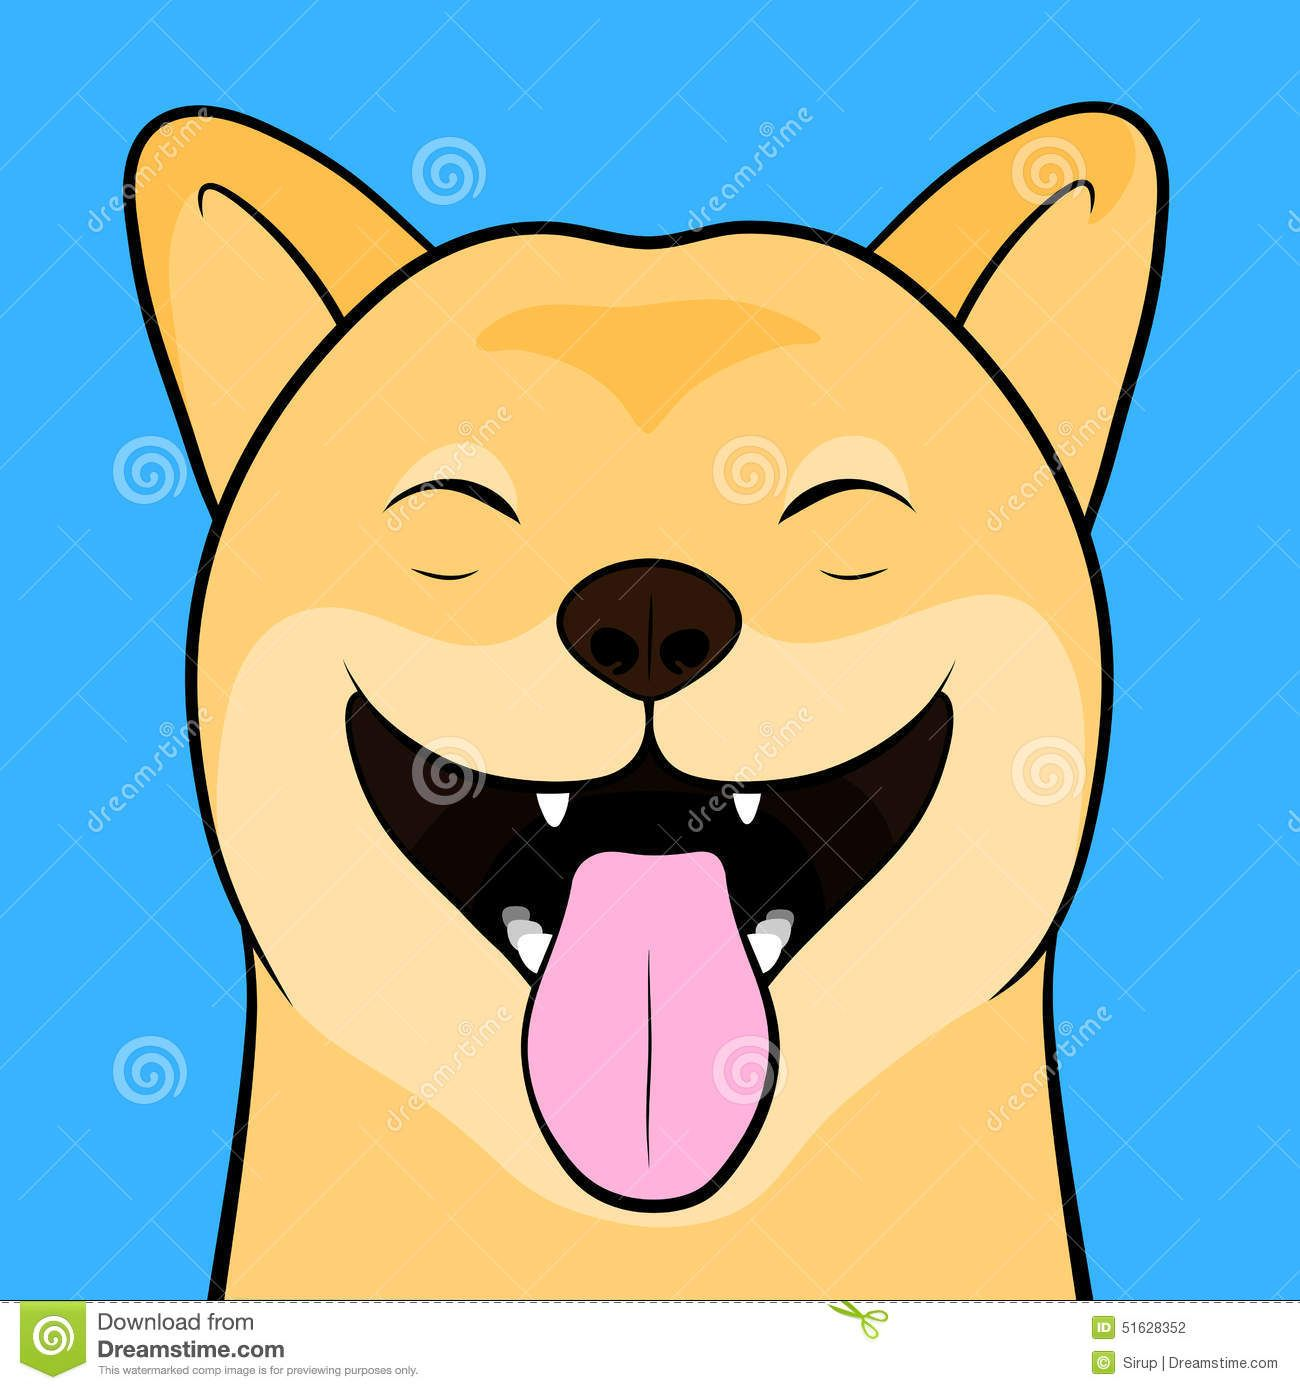 Laughing Cartooned Face Shiba Inu Dog Close Up Funny Tongue Out Light Blue Background 51628352 Jpg 1300 1390 Puppy Cartoon Shiba Inu Dog Laugh Cartoon